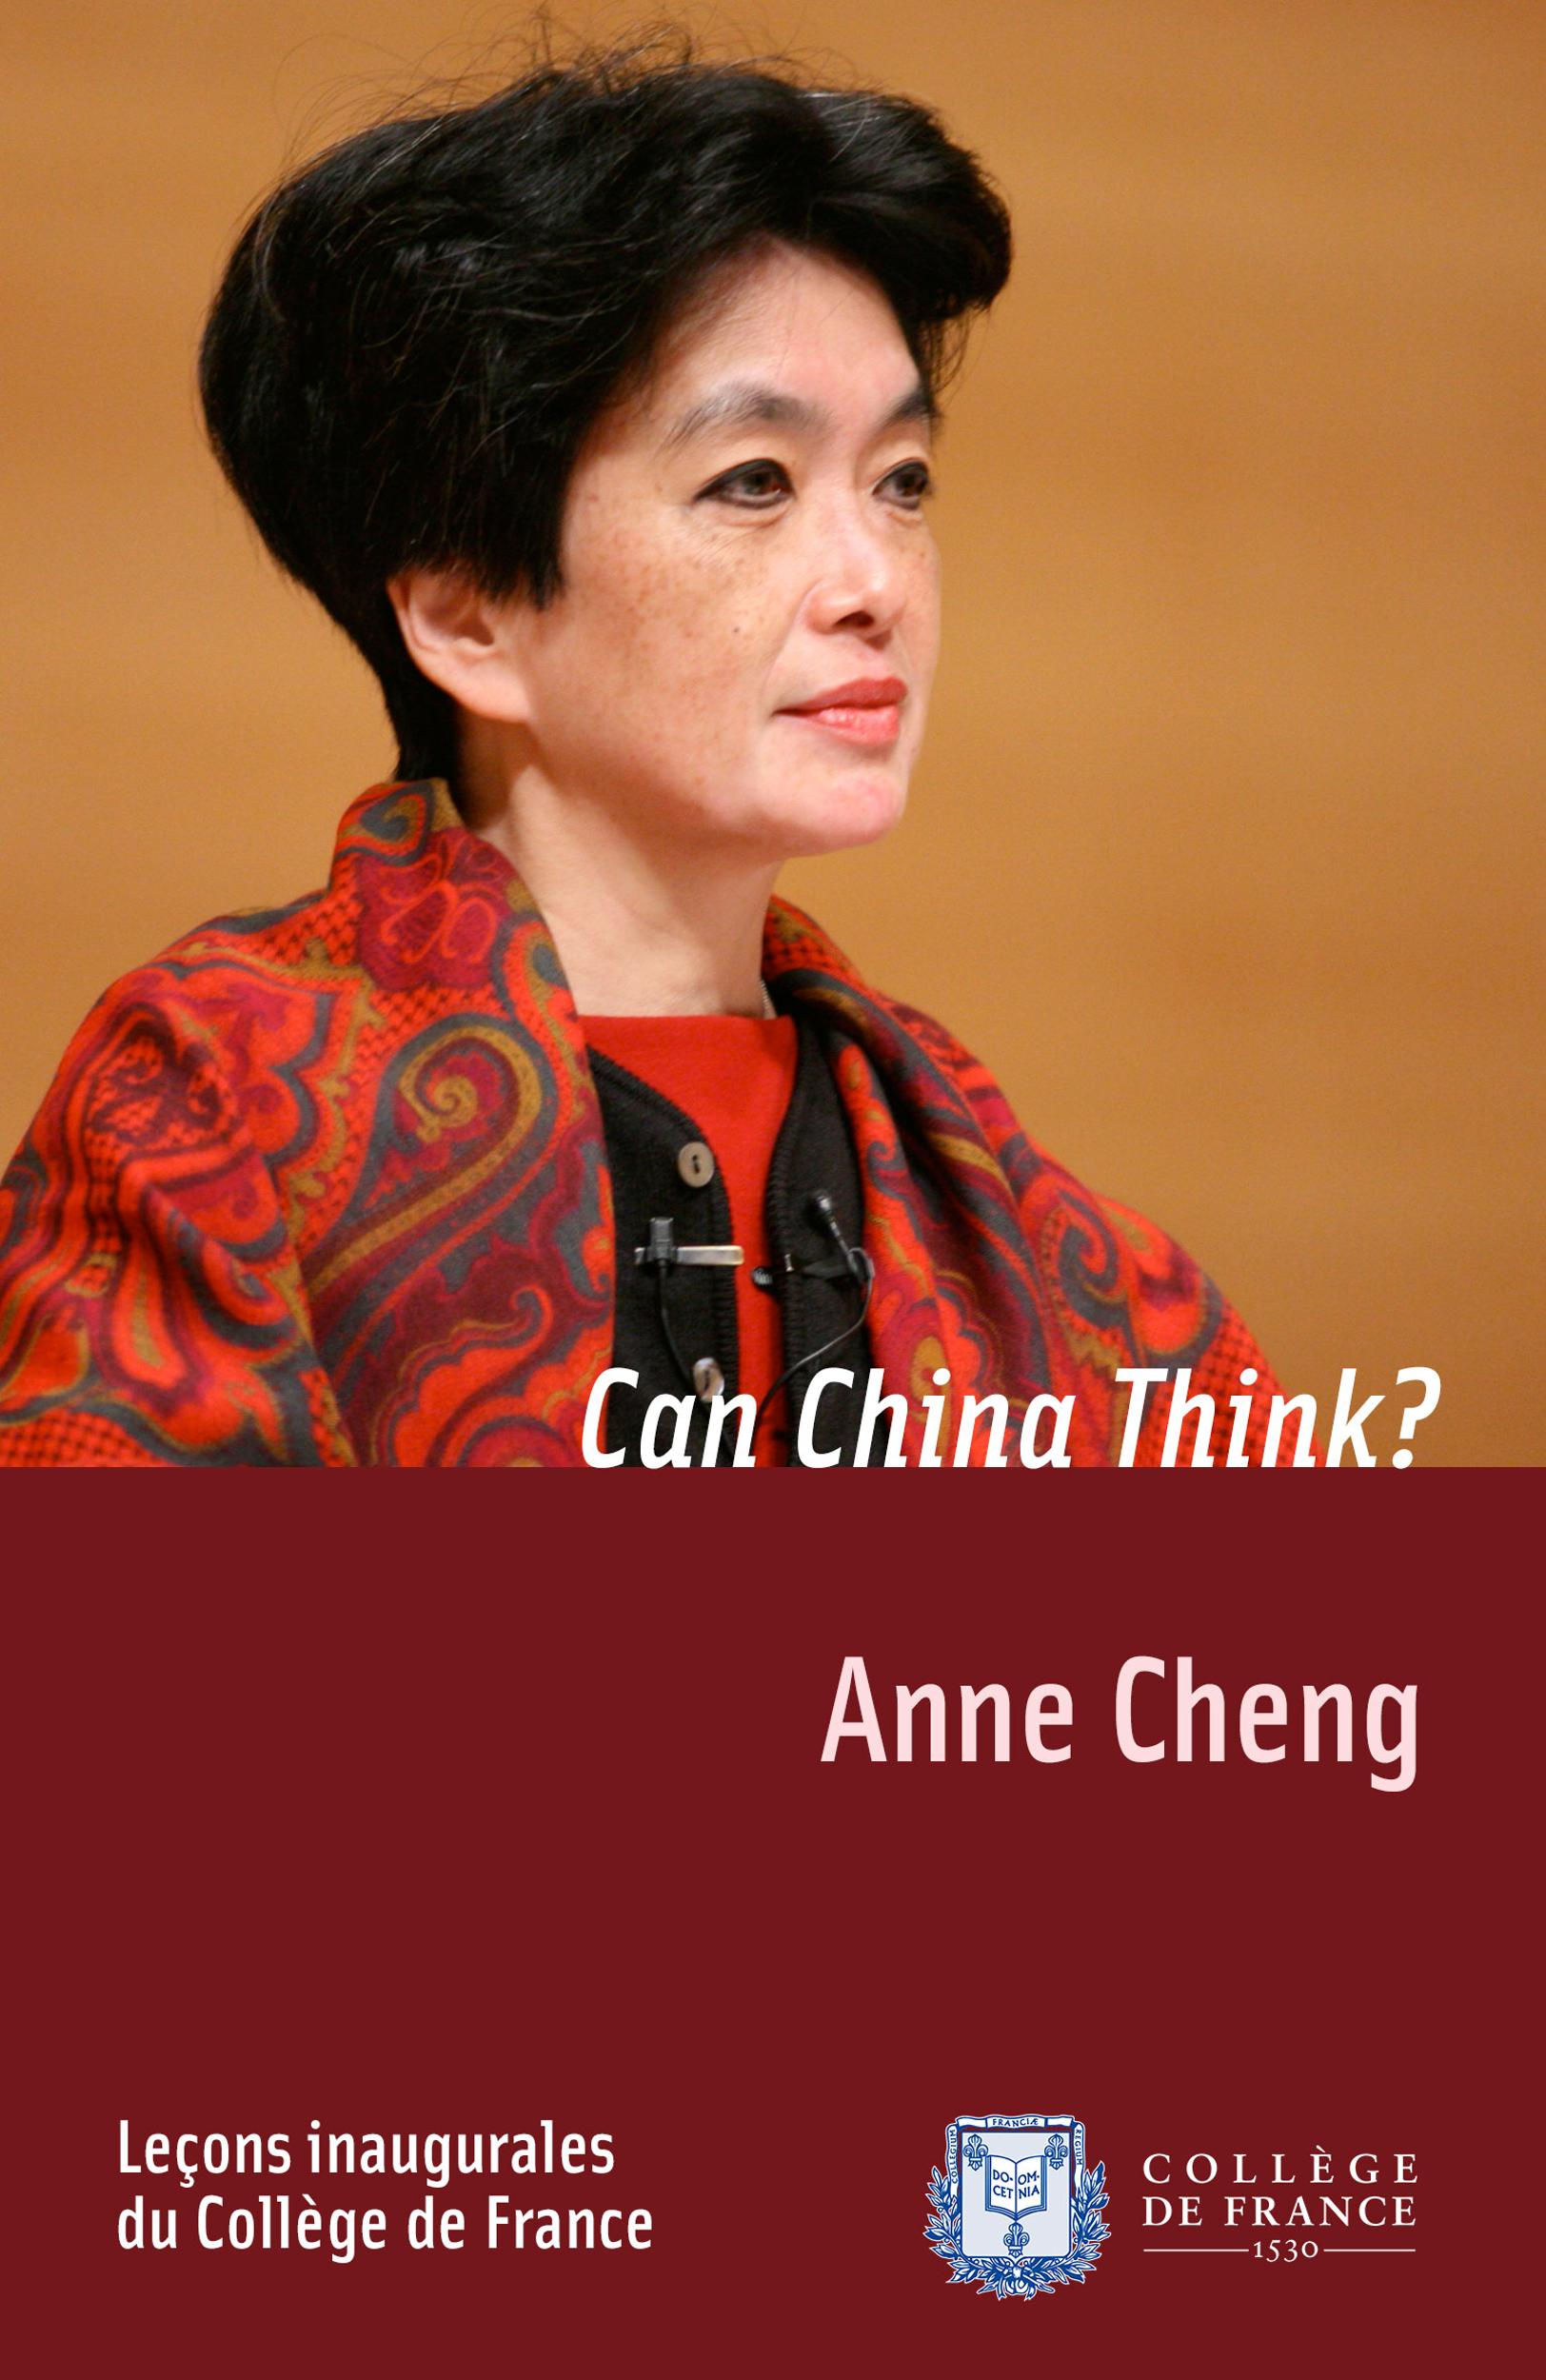 Can China Think?, INAUGURAL LECTURE DELIVERED ON THURSDAY 11 DECEMBER 2008